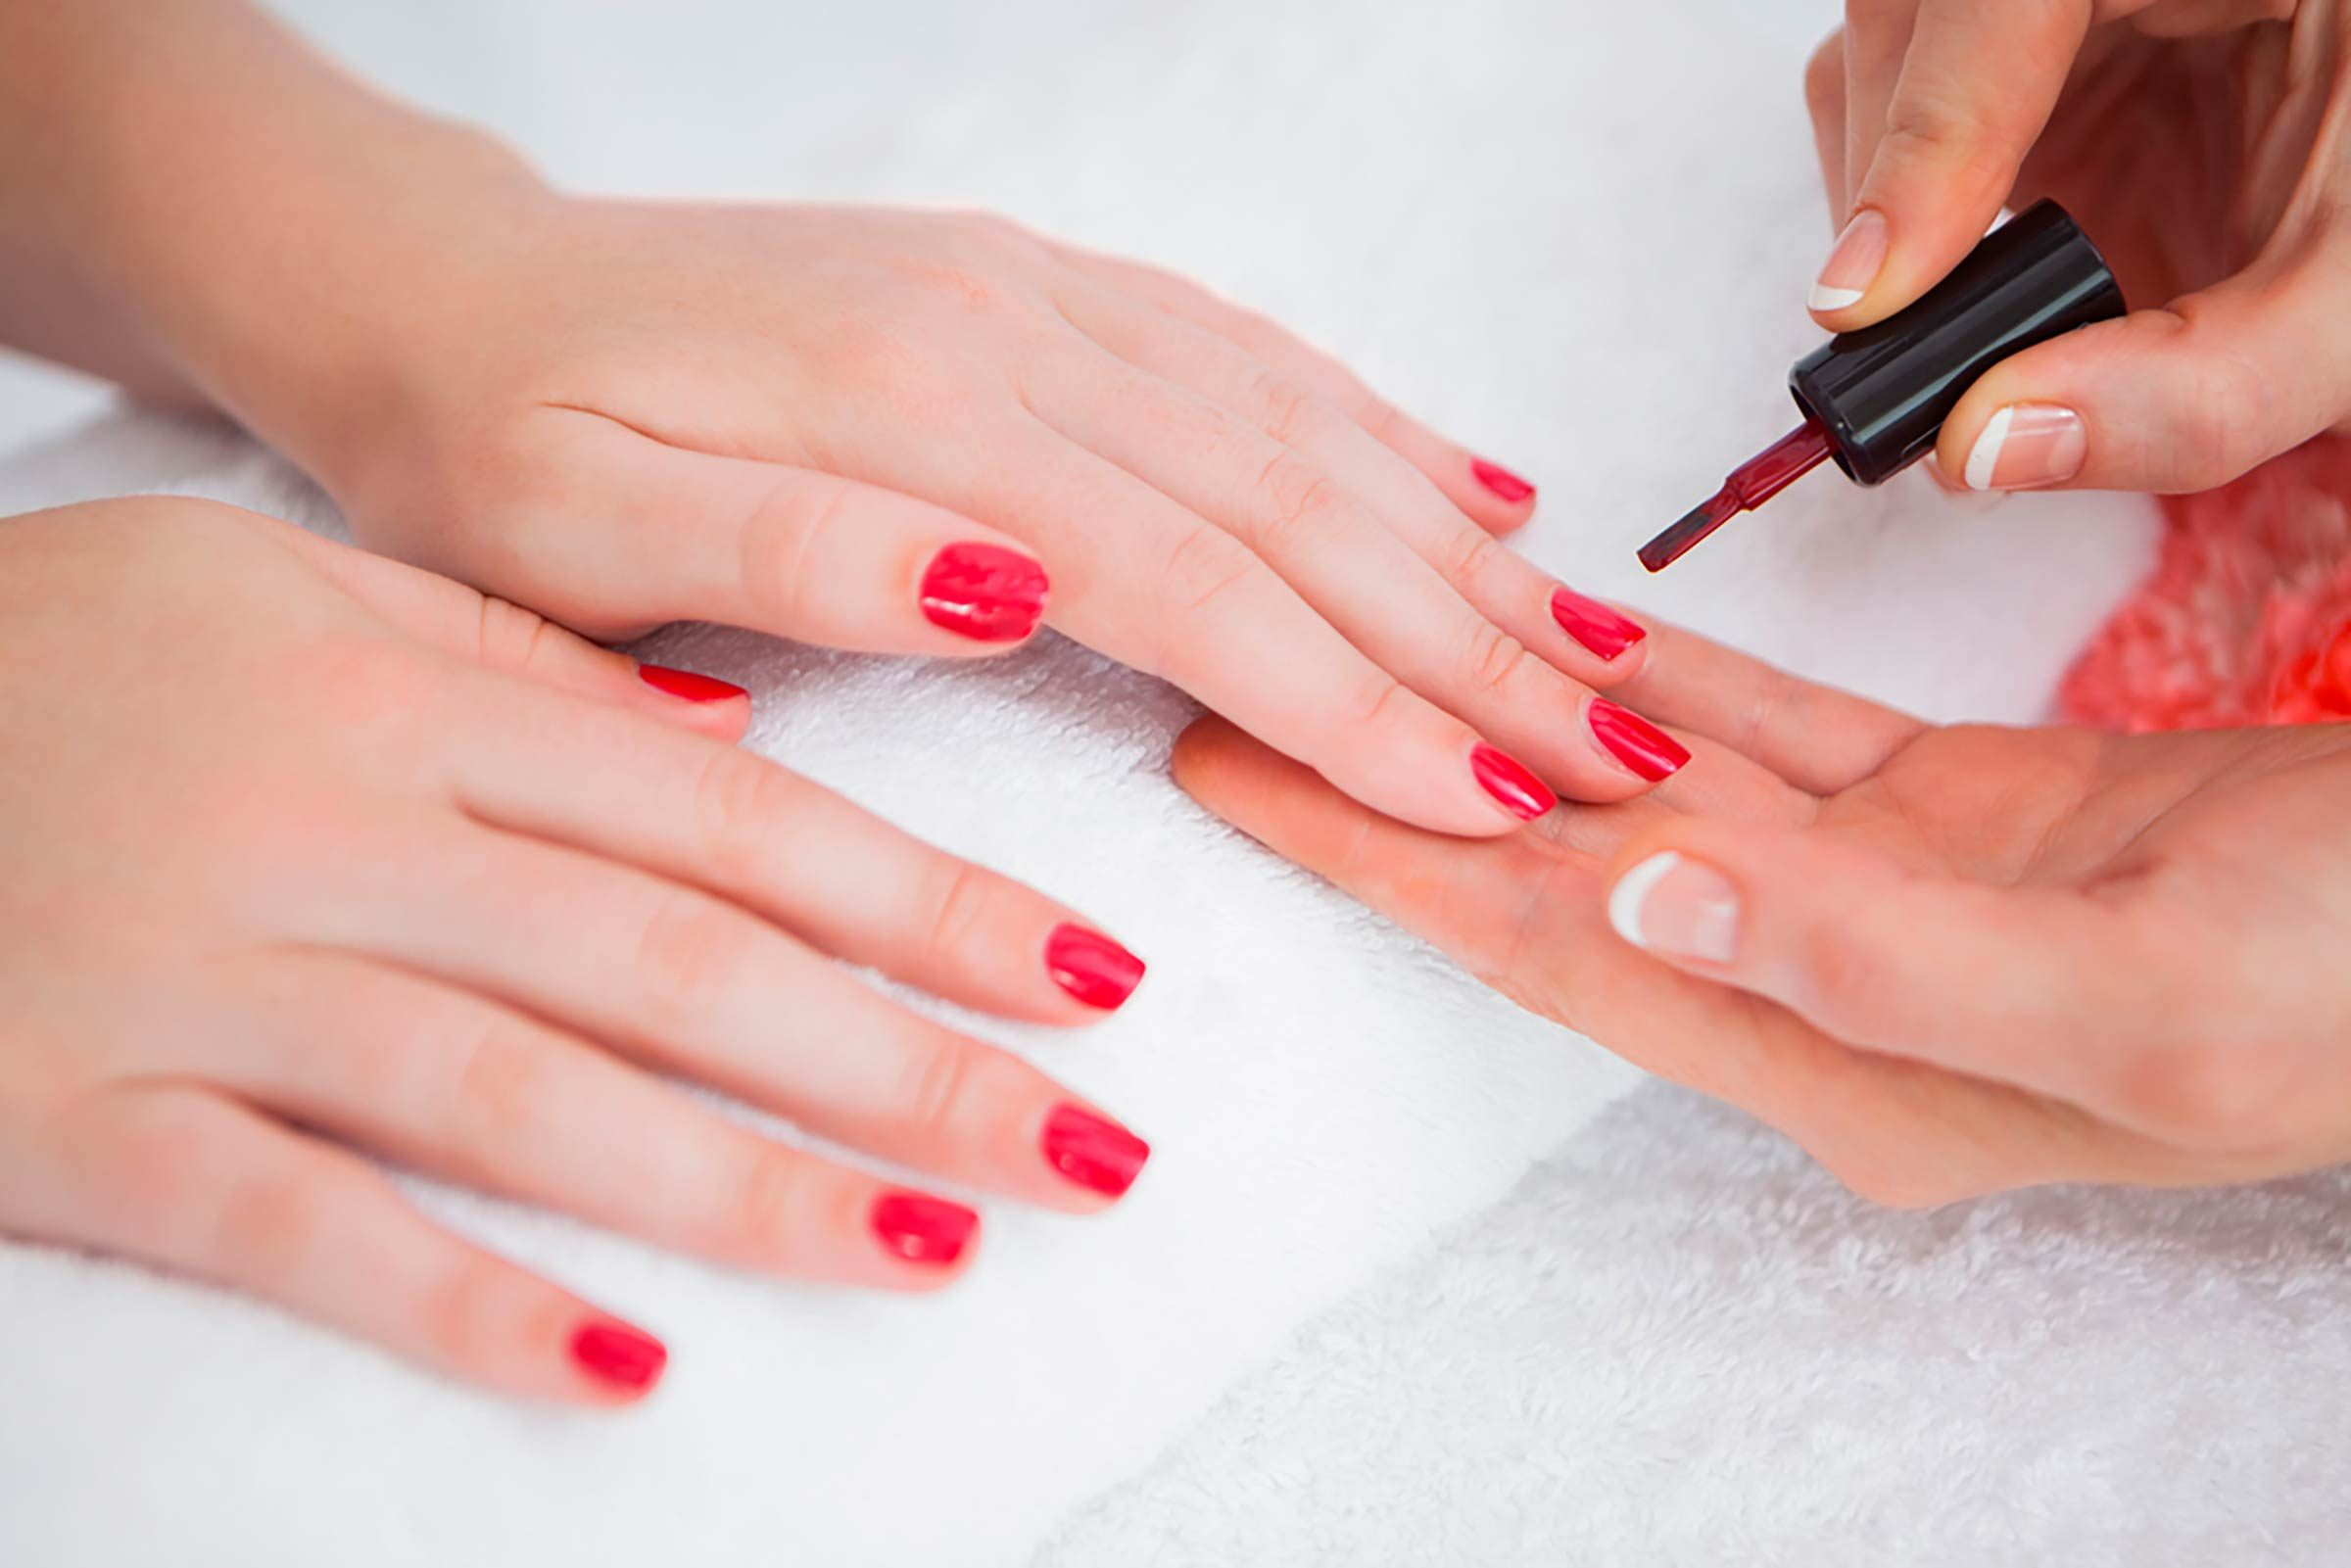 Methyl Methacrylate in Nail Salons: What You Need to Know | Reader\'s ...